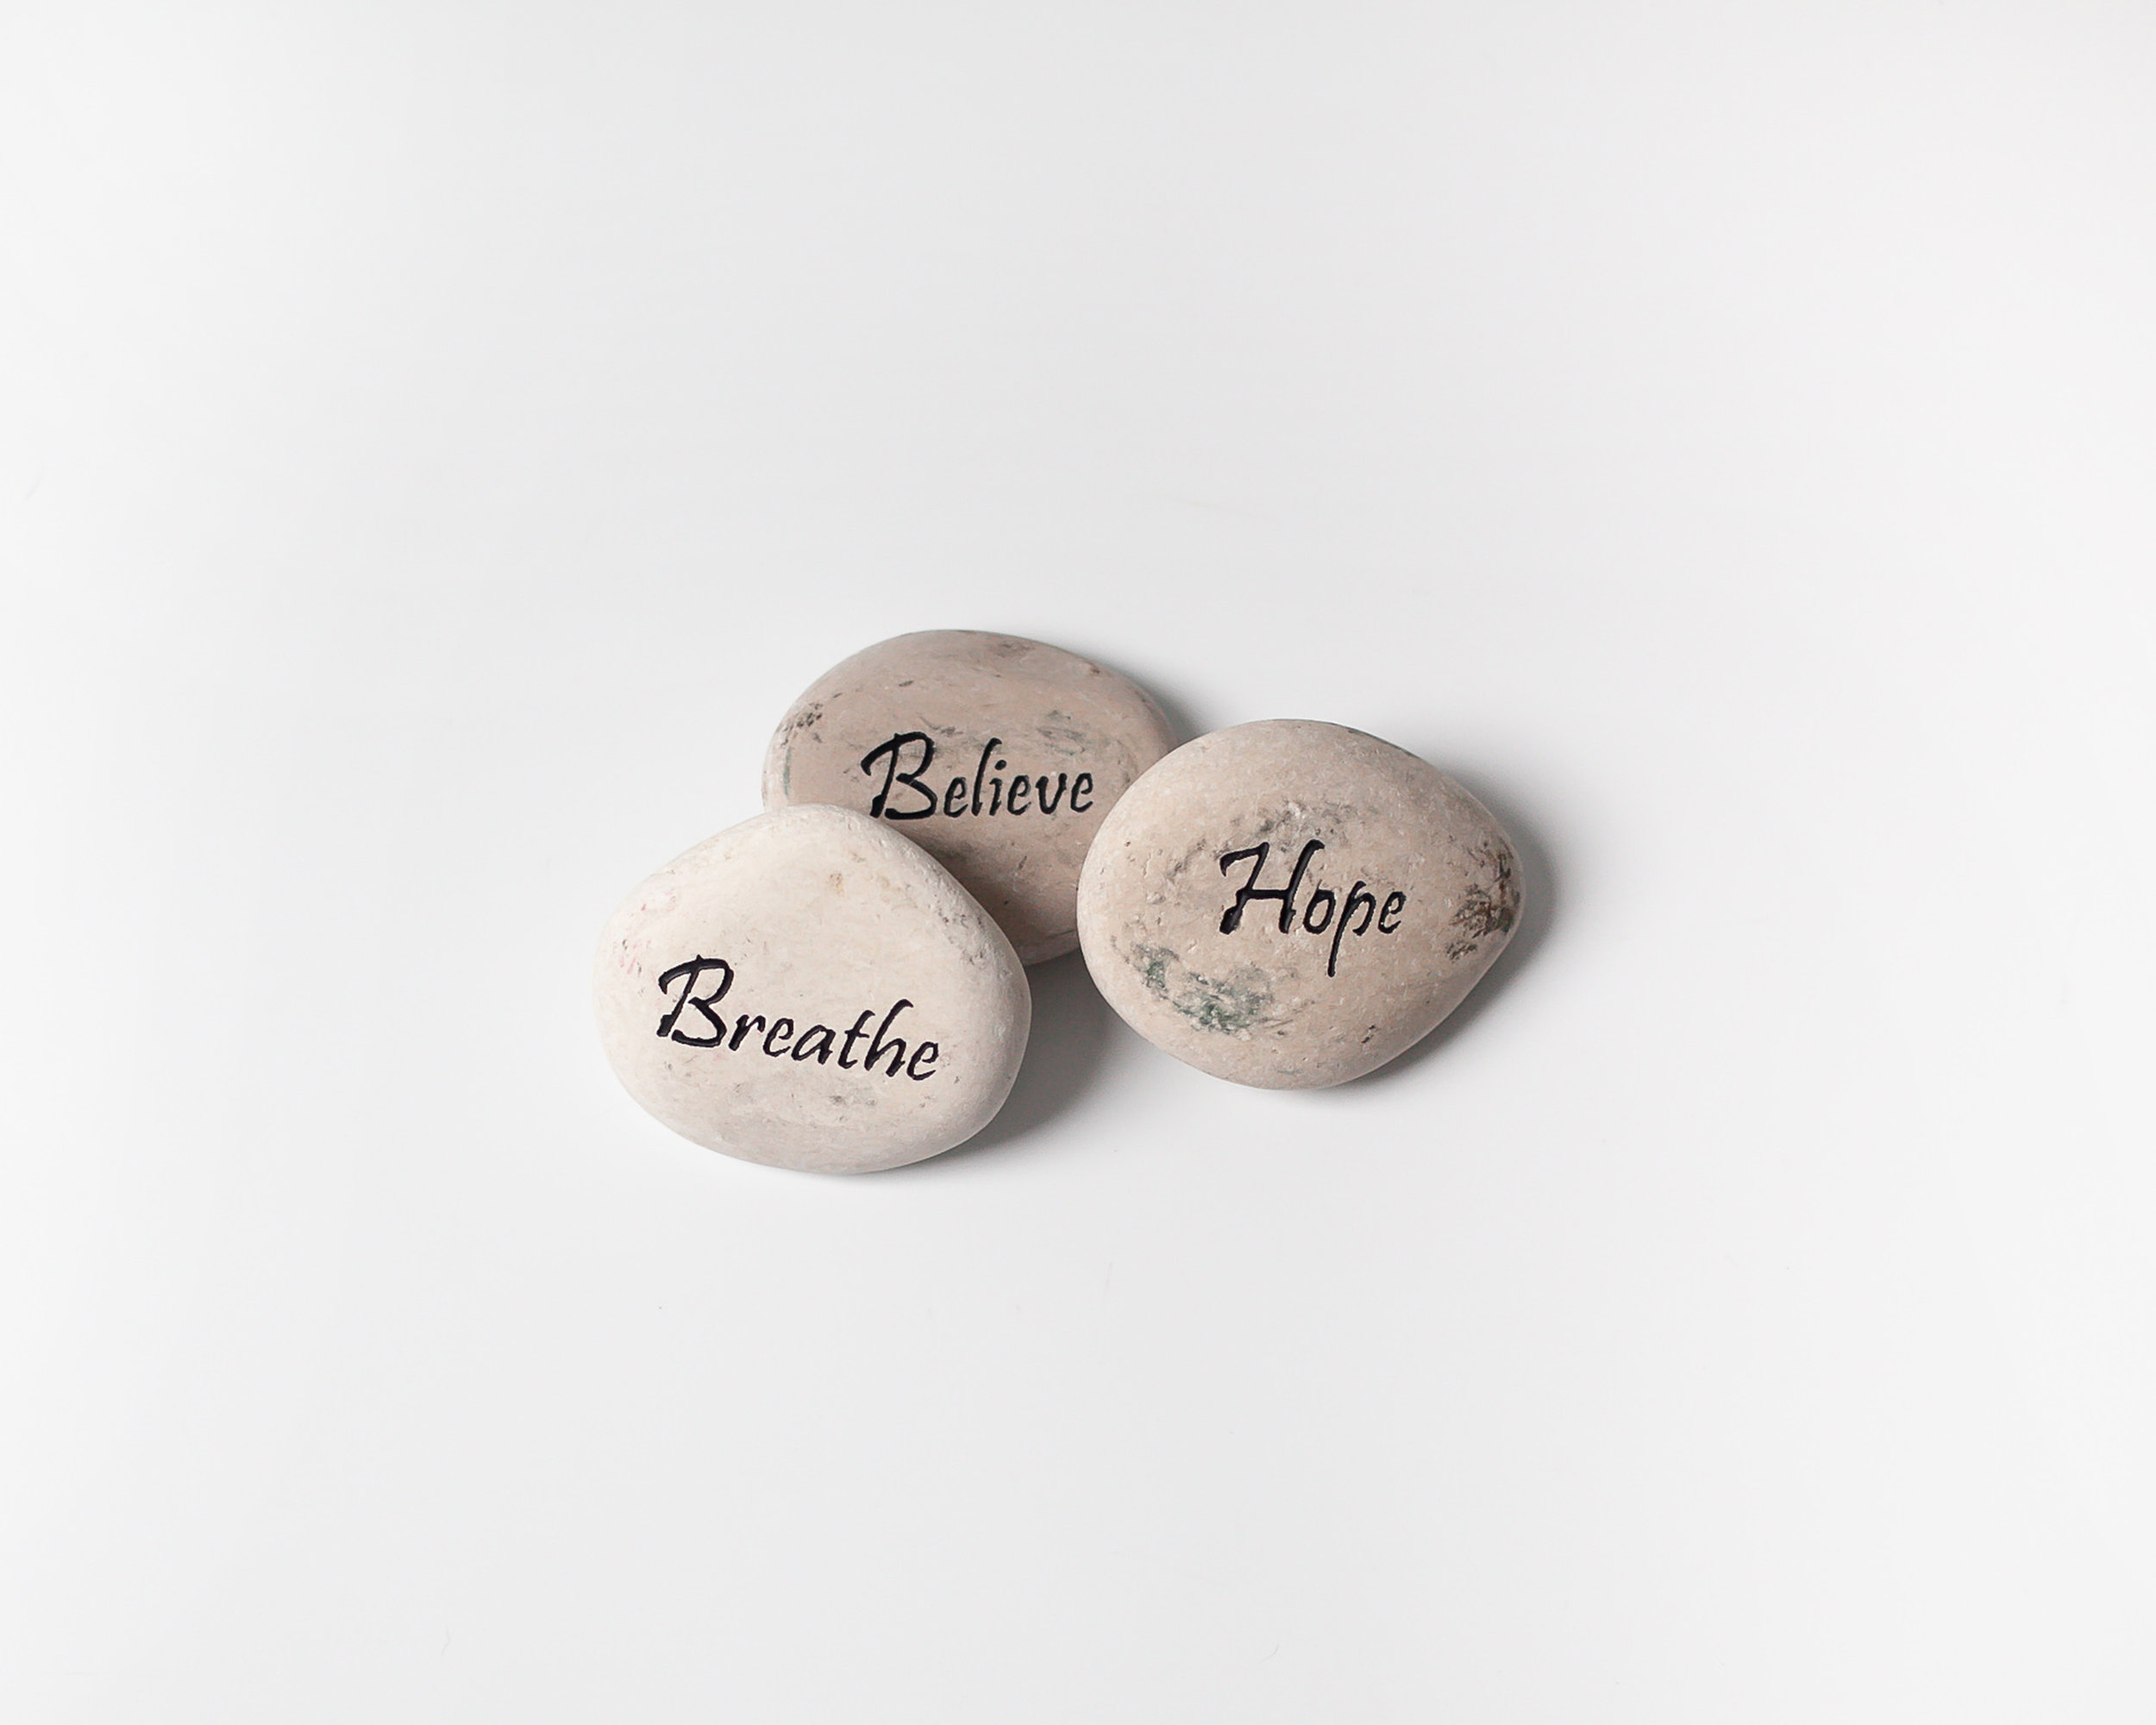 Whitby_Core_Energy_Therapy_Healing_Stones_Branding_Photographer_Petra_King_Photography